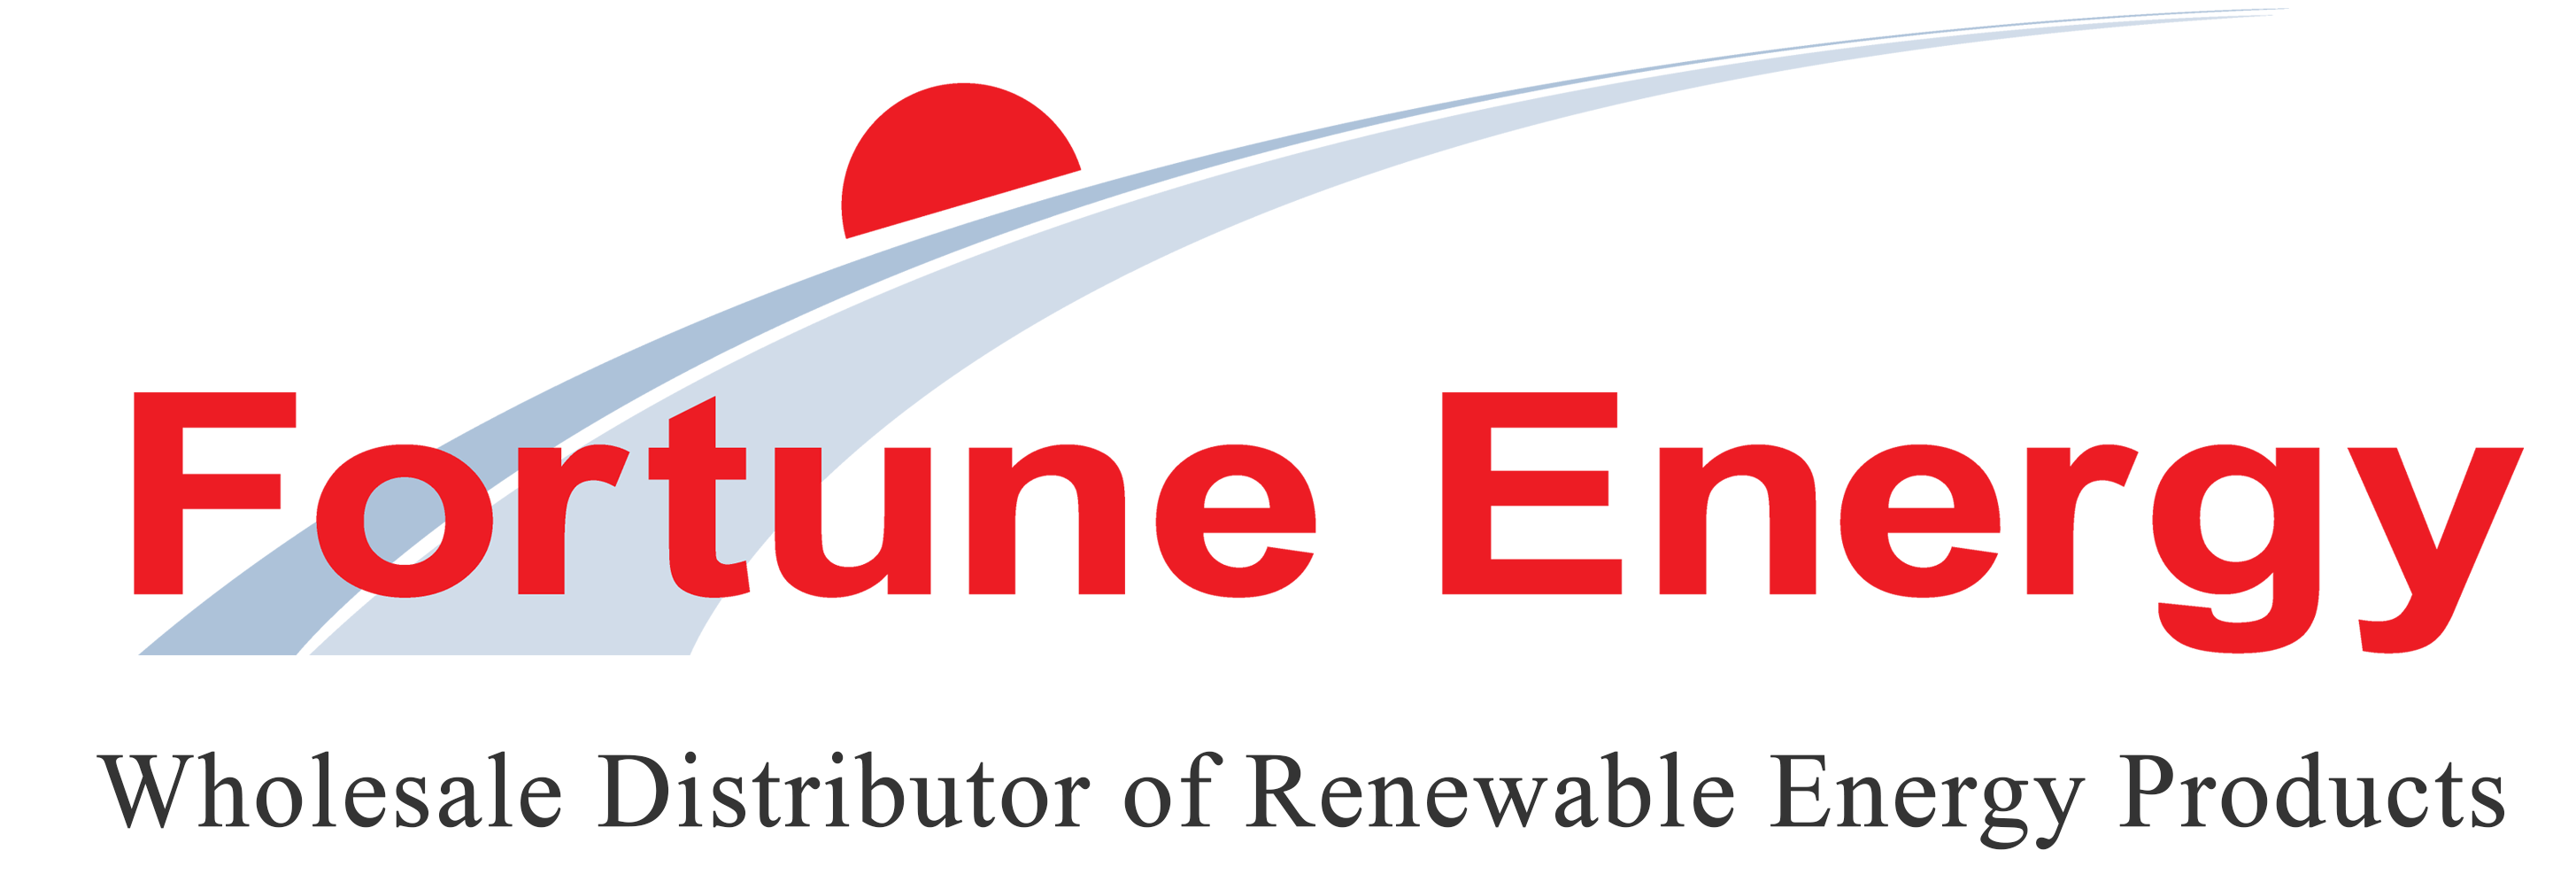 fortuneenergy-logo-new-2017.png